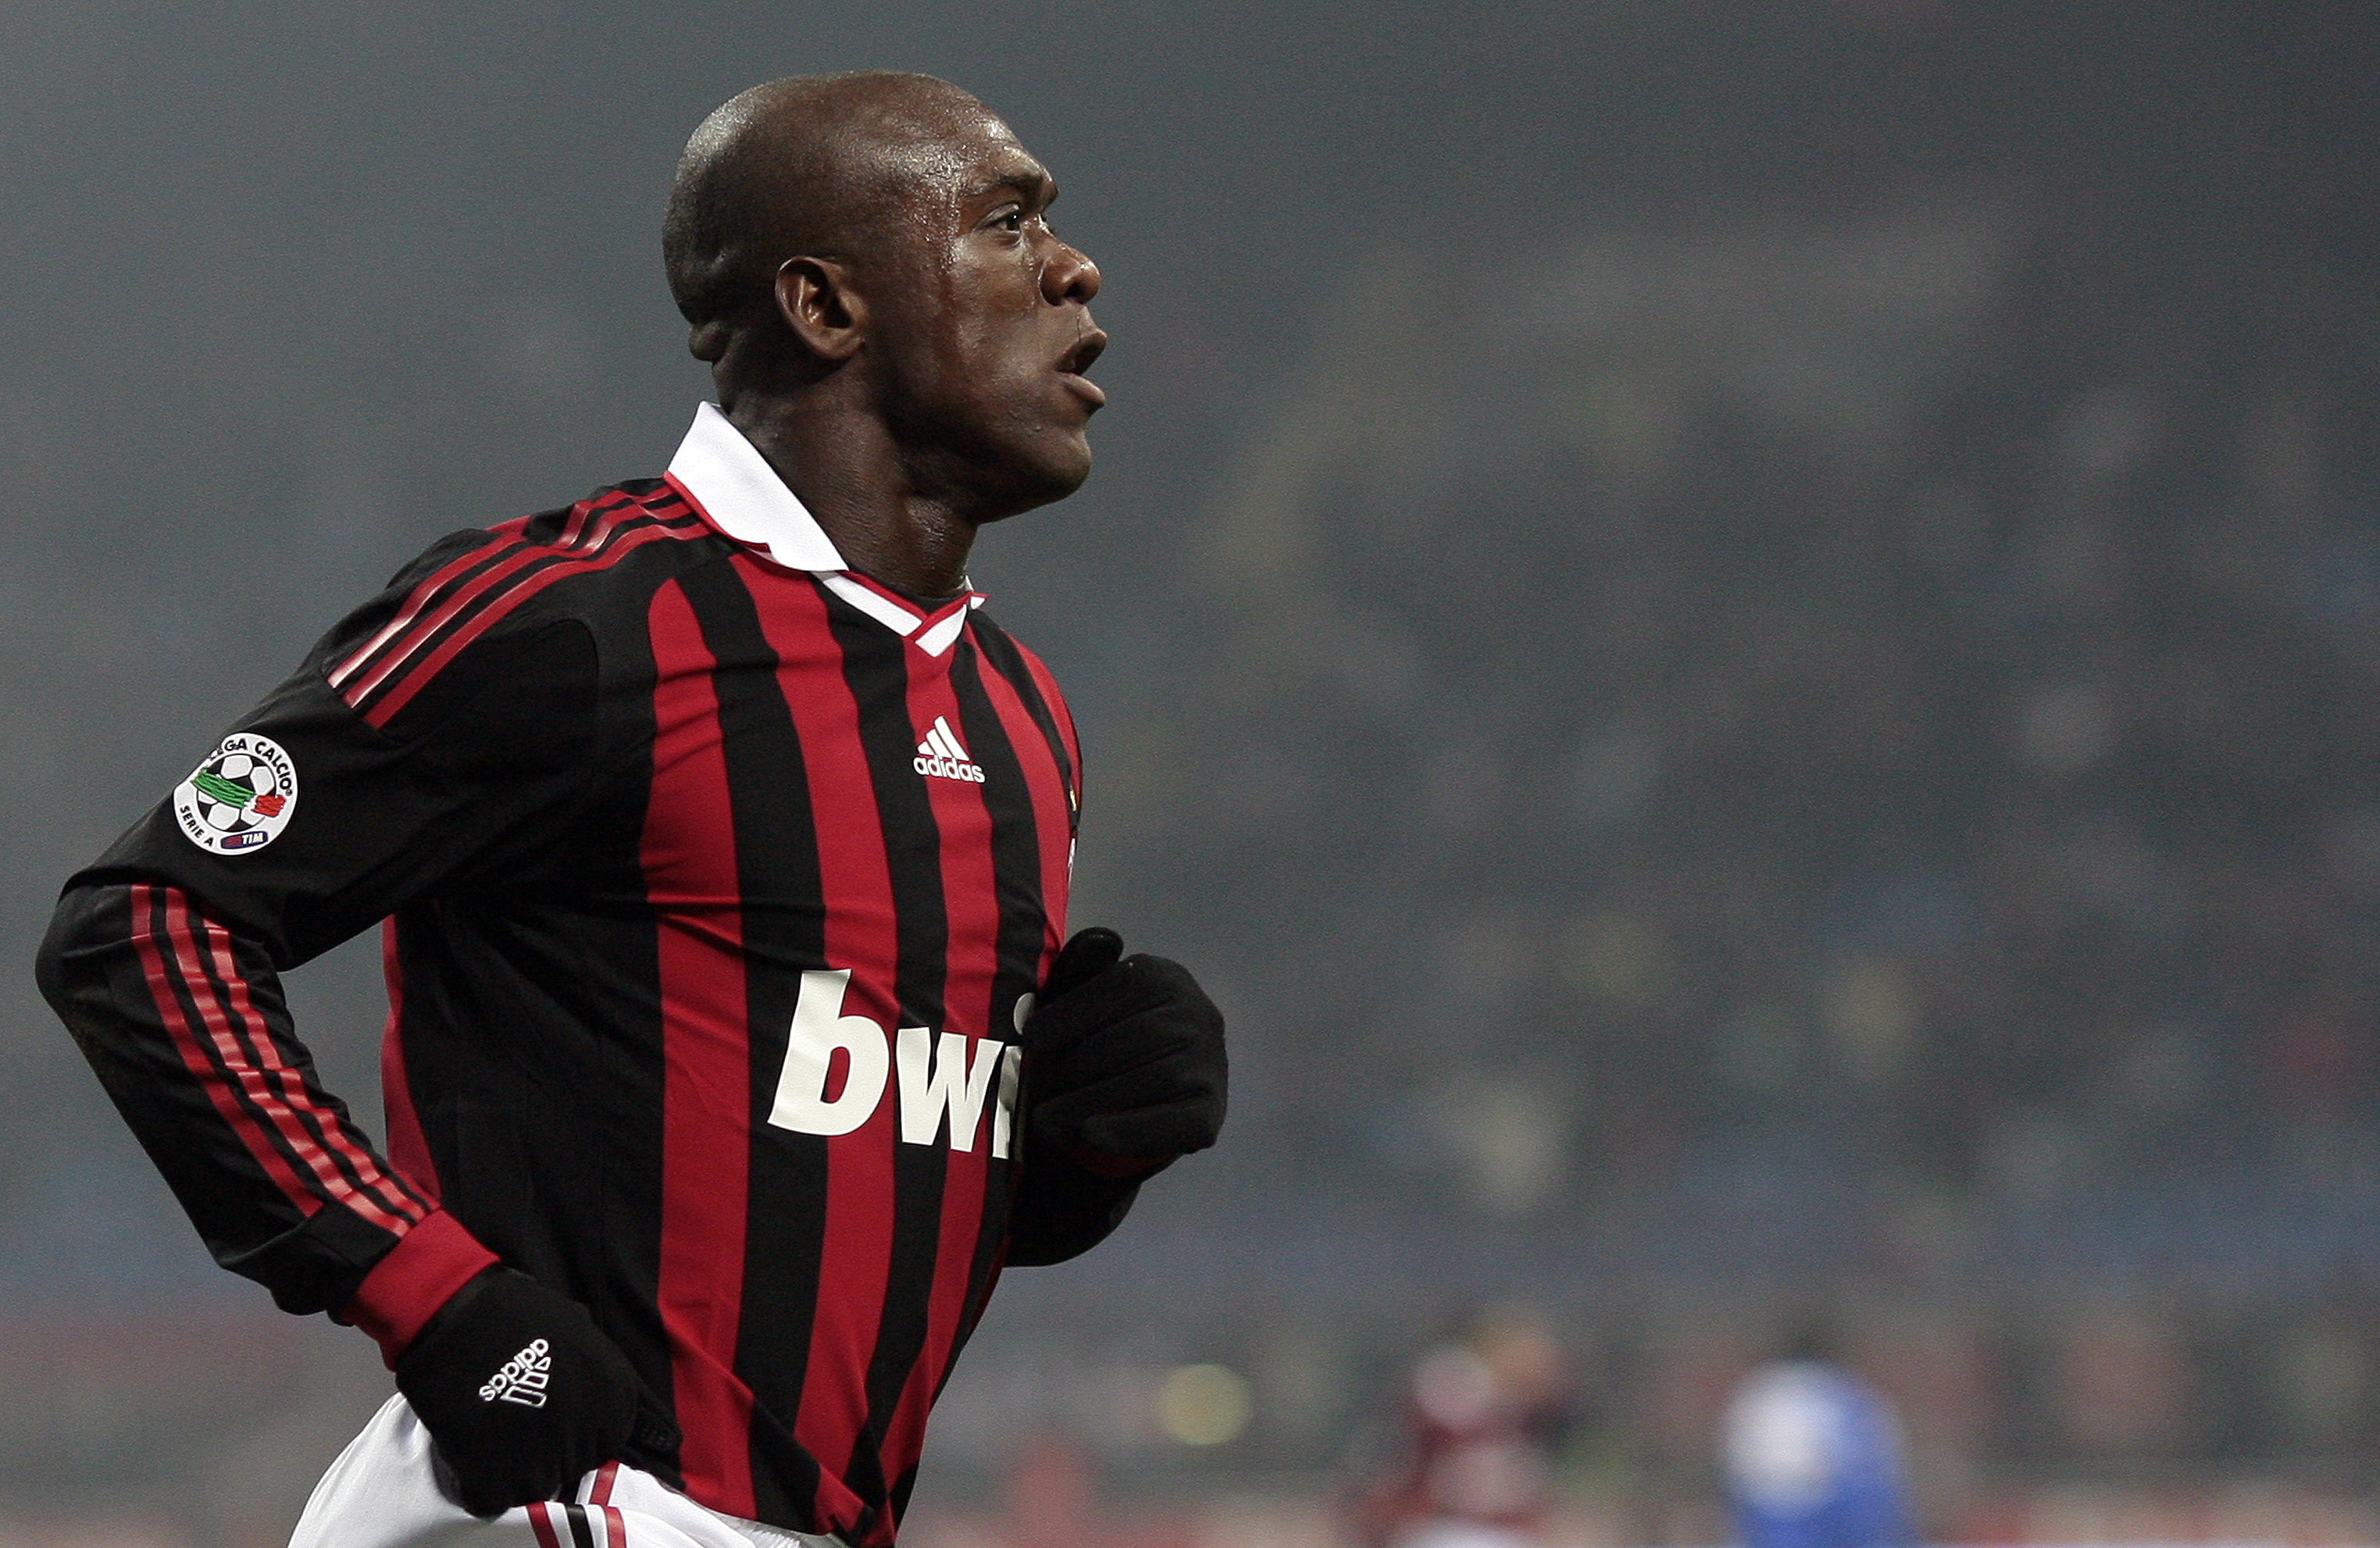 What do you want to ask Clarence Seedorf?